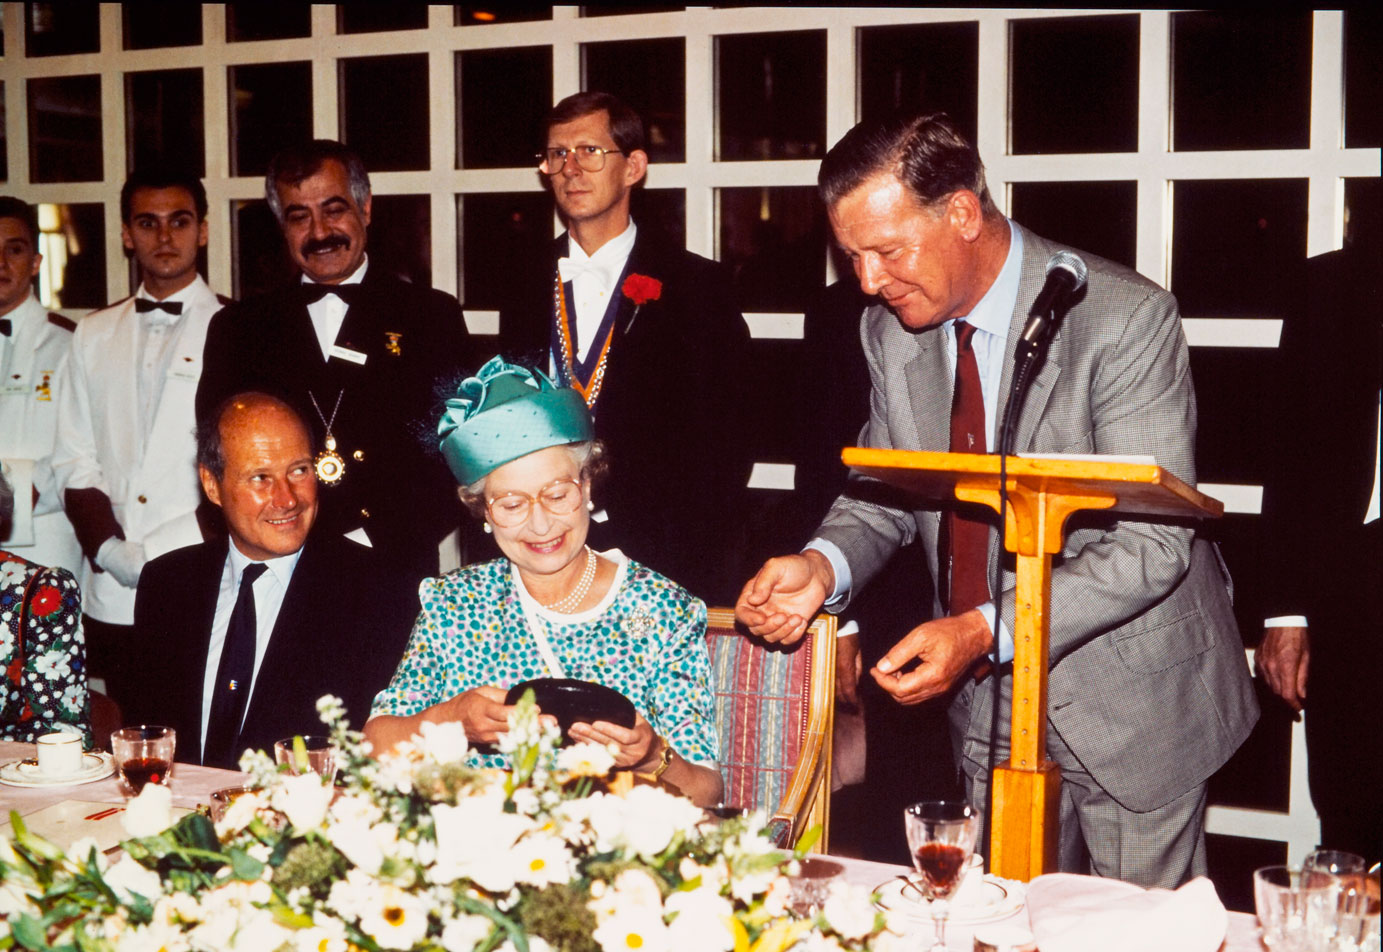 Cunard's 150th Anniversary – Friday 27 July 1990